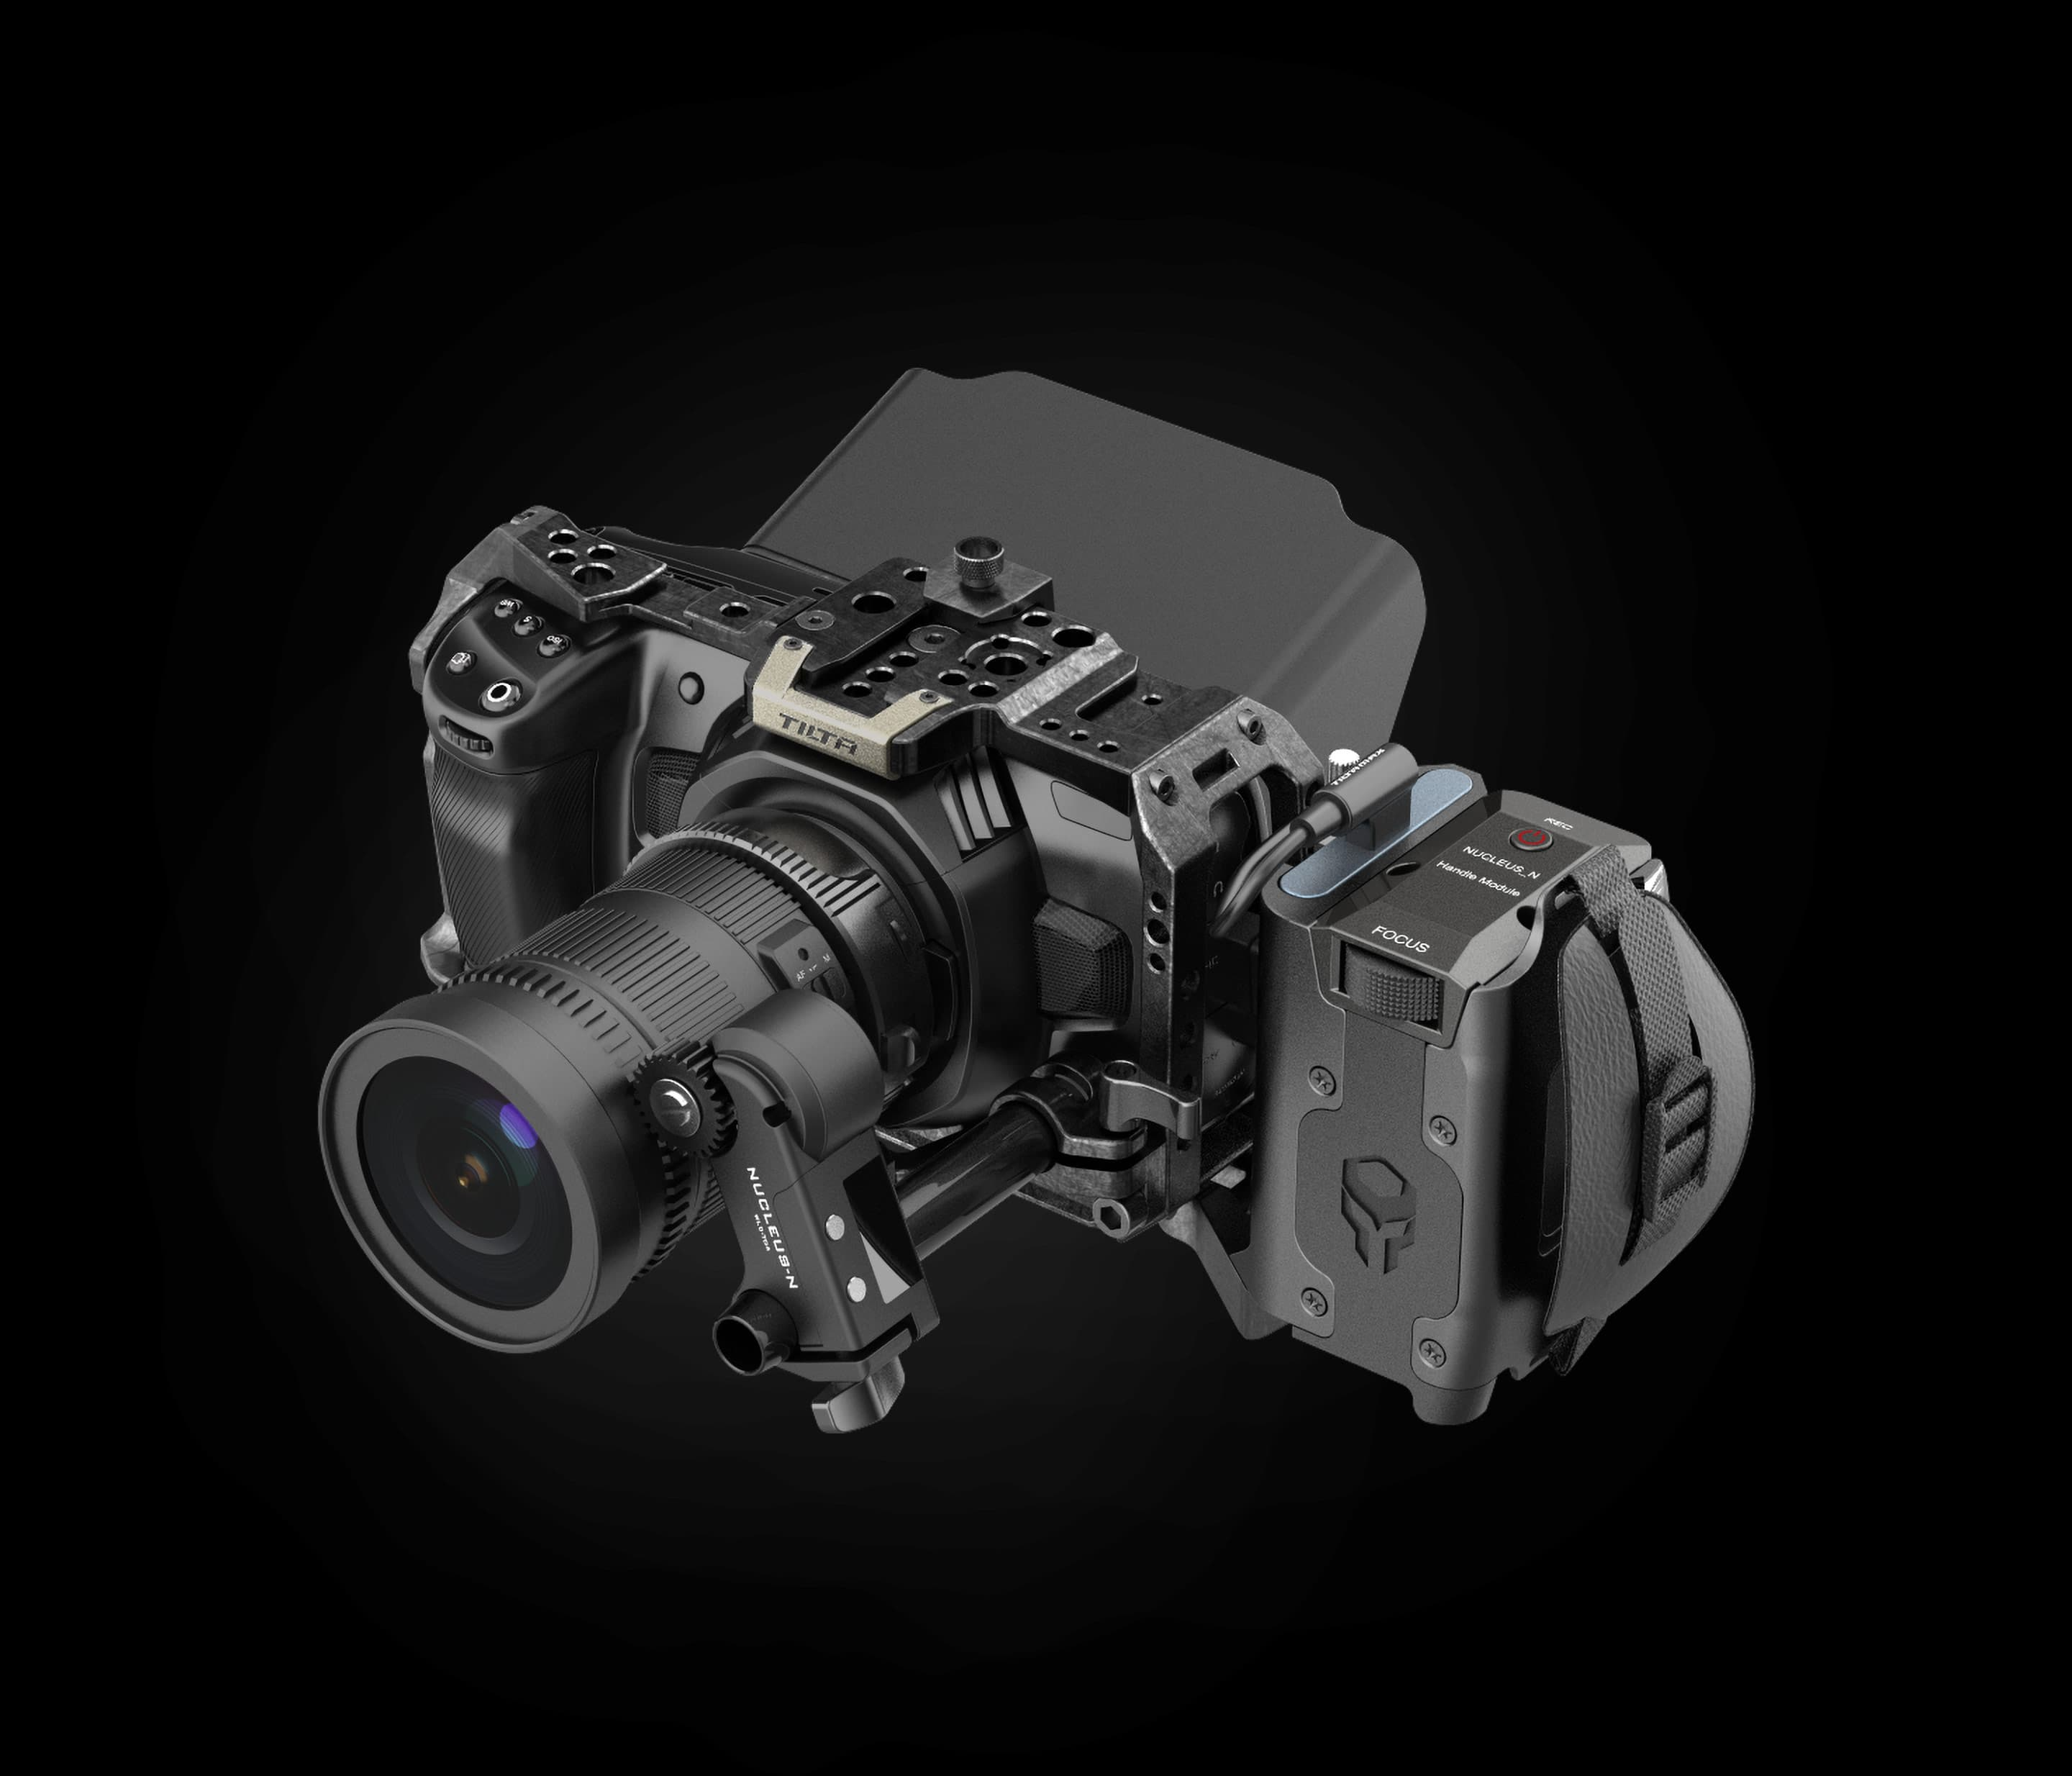 Blackmagic Pocket Cinema Camera 4K by Tilta